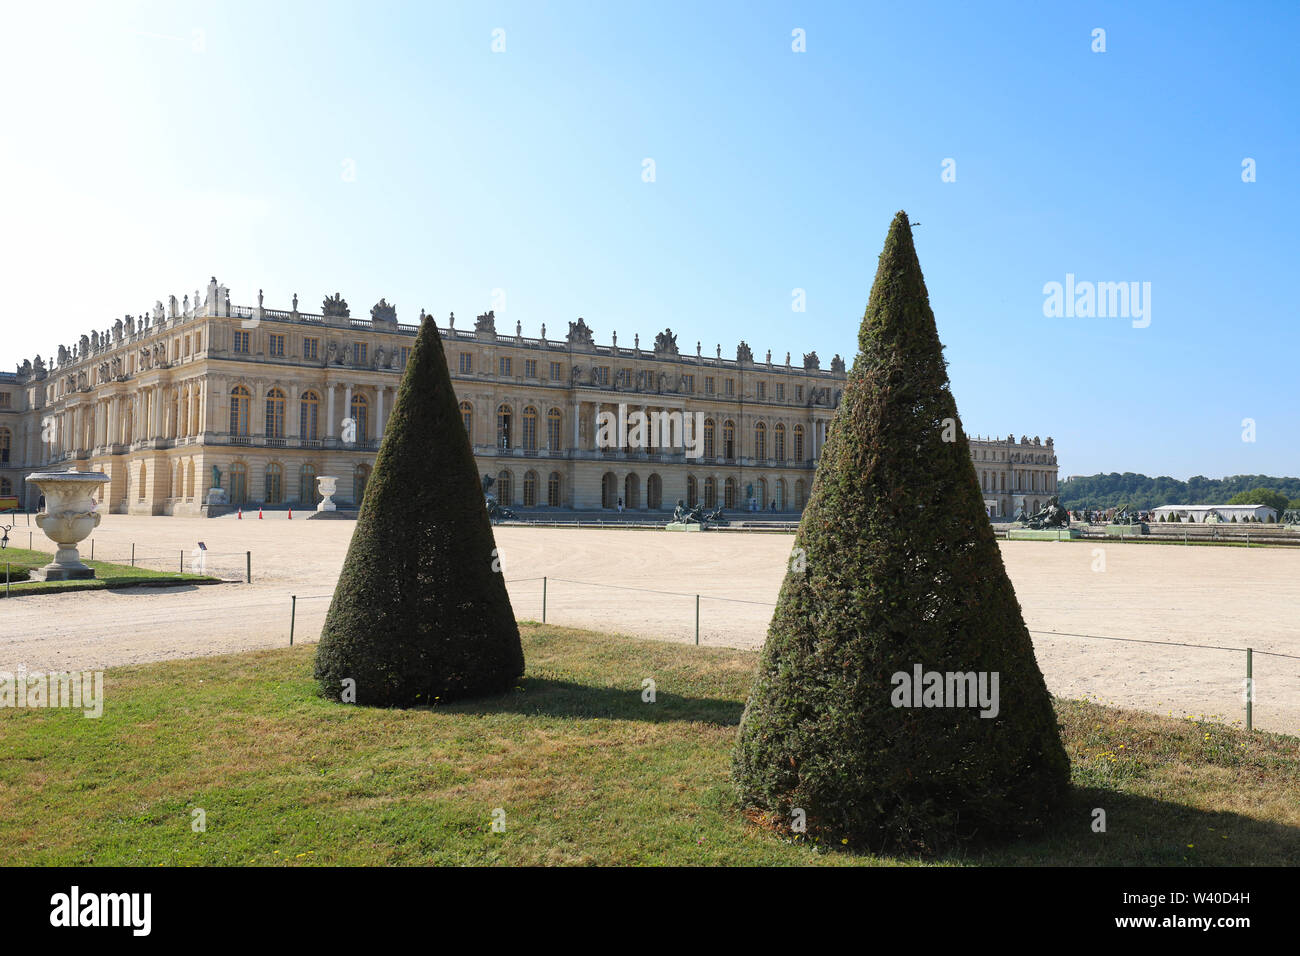 Versailles, France-July 13, 2019 : Outside view of Famous palace Versailles. The Palace Versailles was a royal castle. It located 20 kilometres Southw - Stock Image